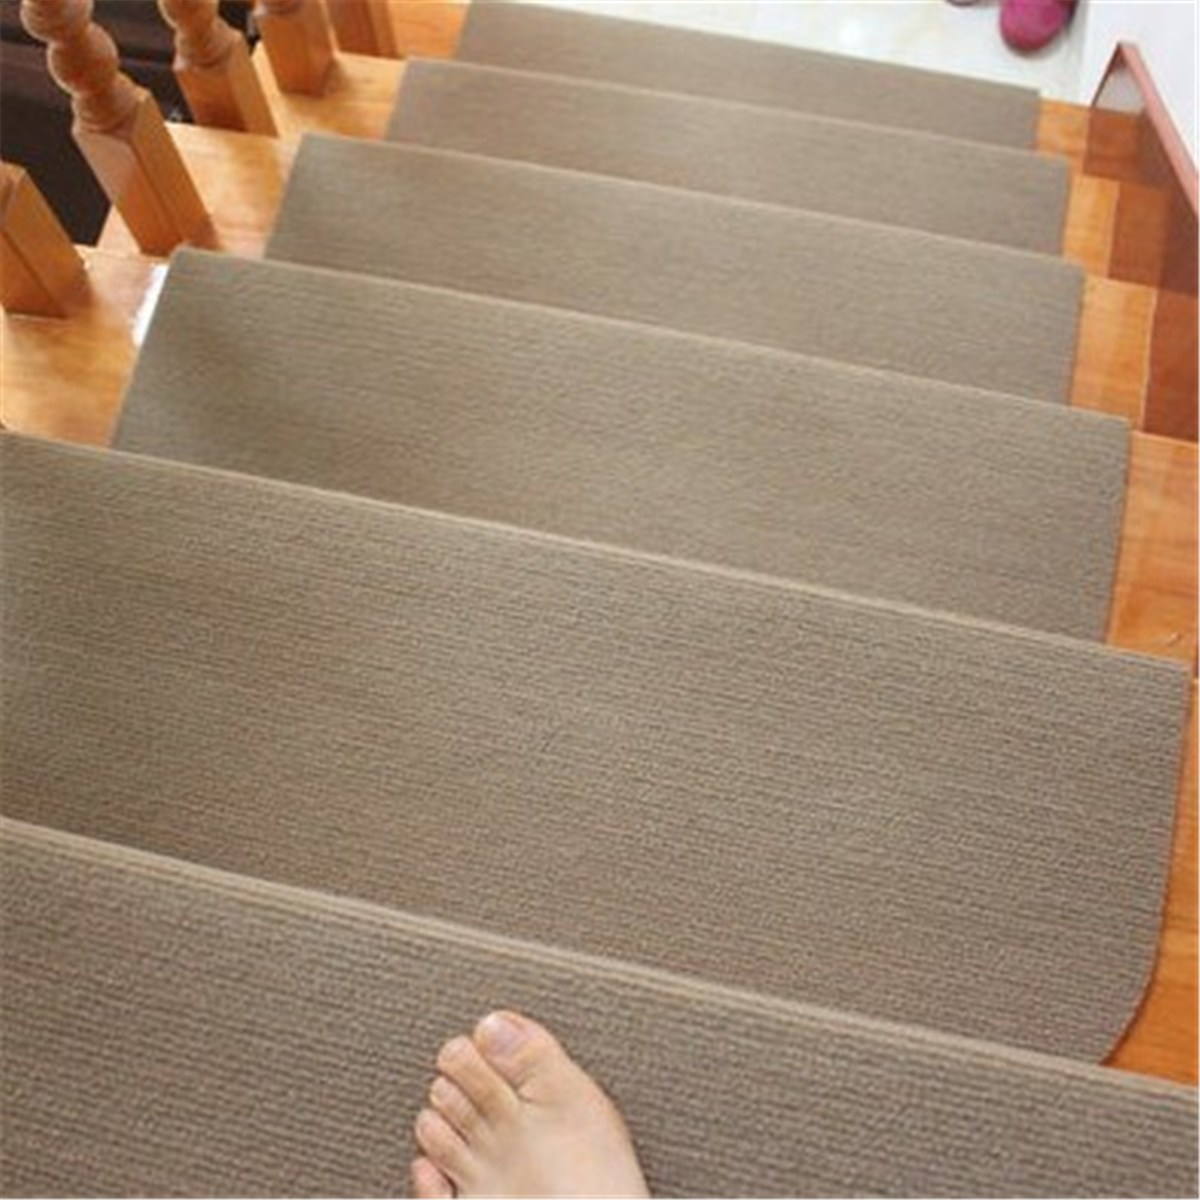 Non Slip Carpet Stair Tread 55x24cm Non Woven Household Door Mats PVC  Bottom Step Area Pads Rug Home Decoration Textiles In Carpet From Home U0026  Garden On ...